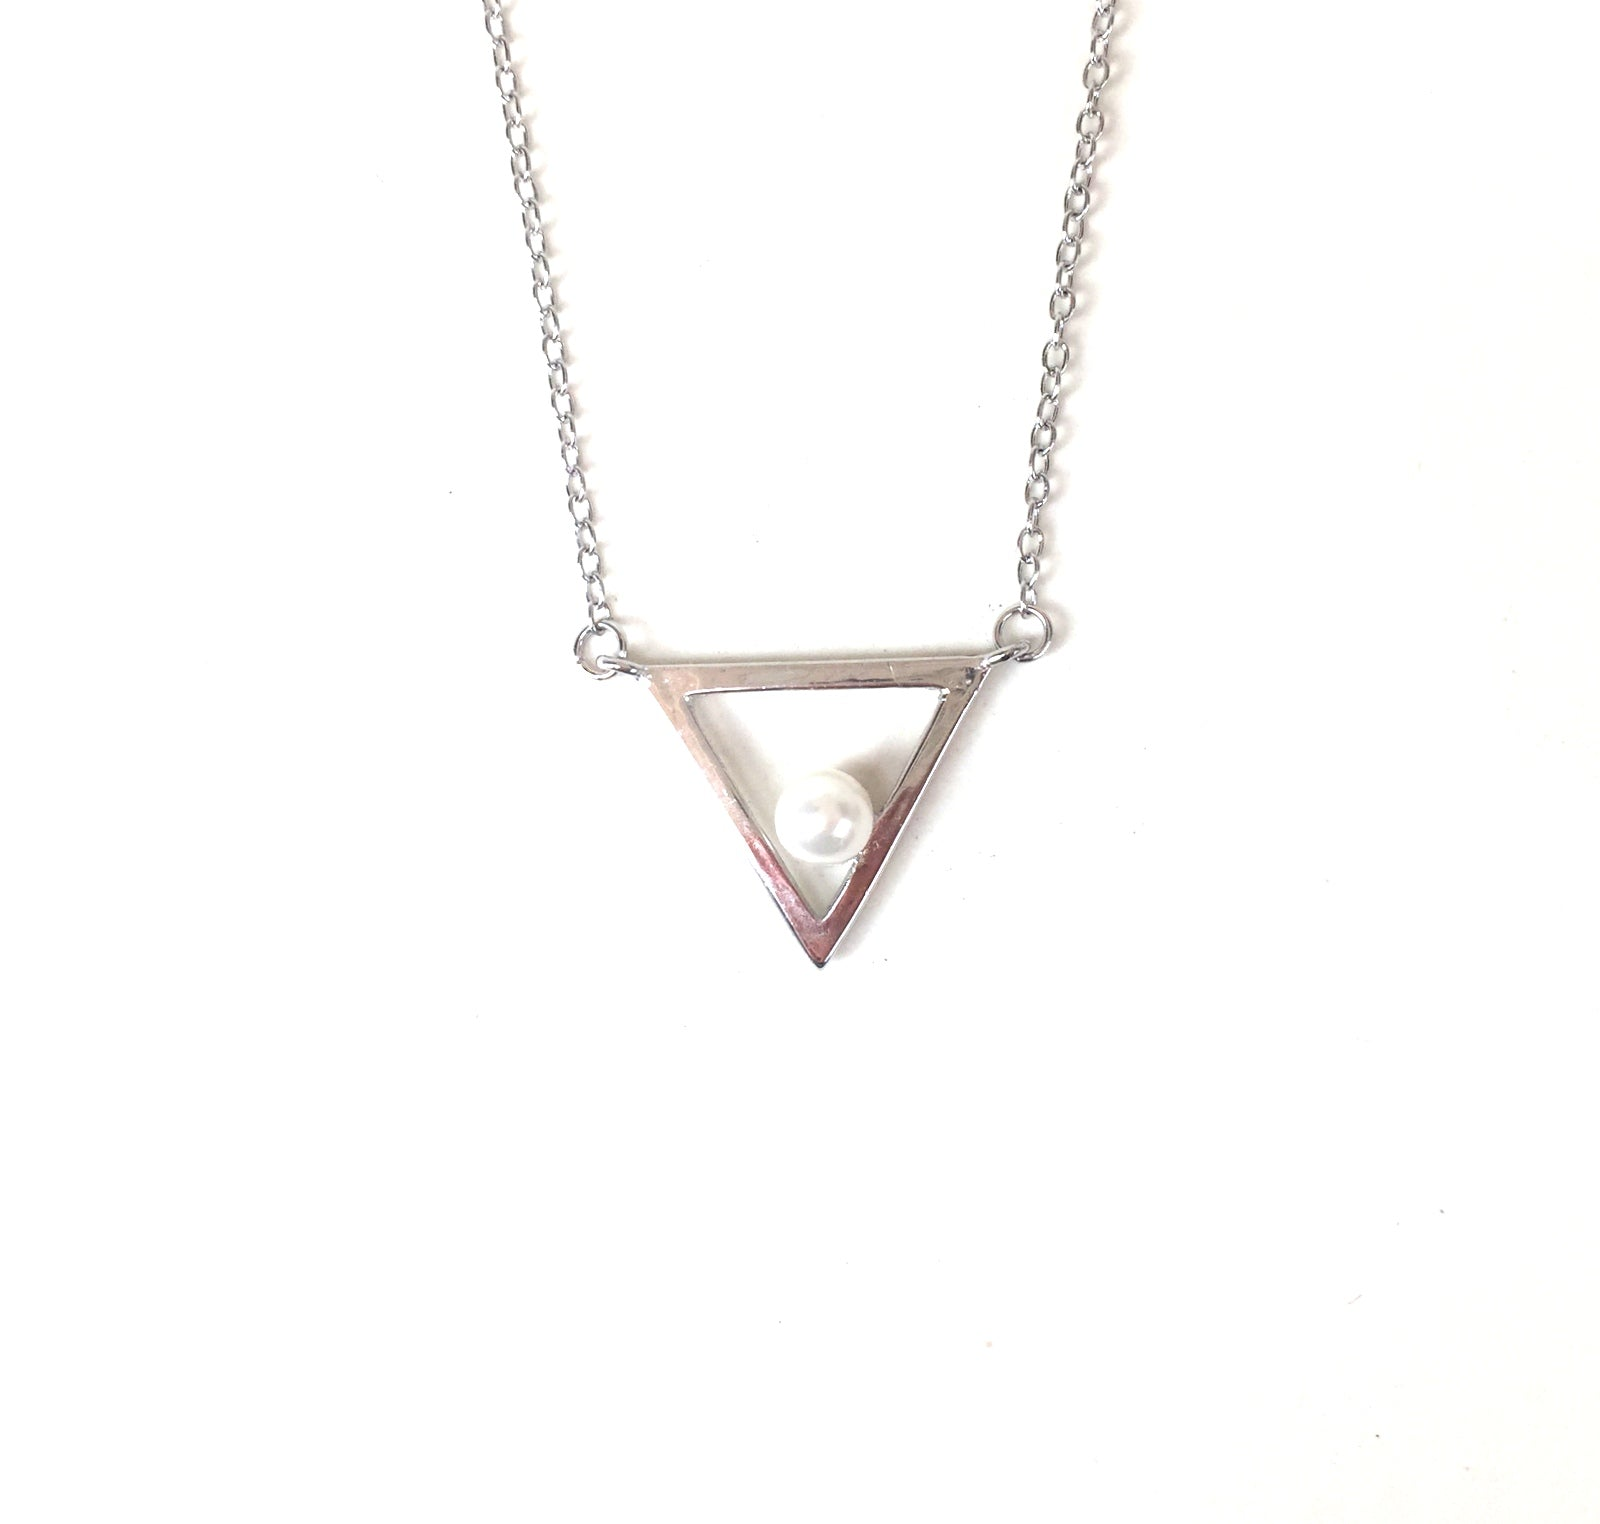 SMALL PEARL IN TRIANGLE STERLING SILVER NECKLACE